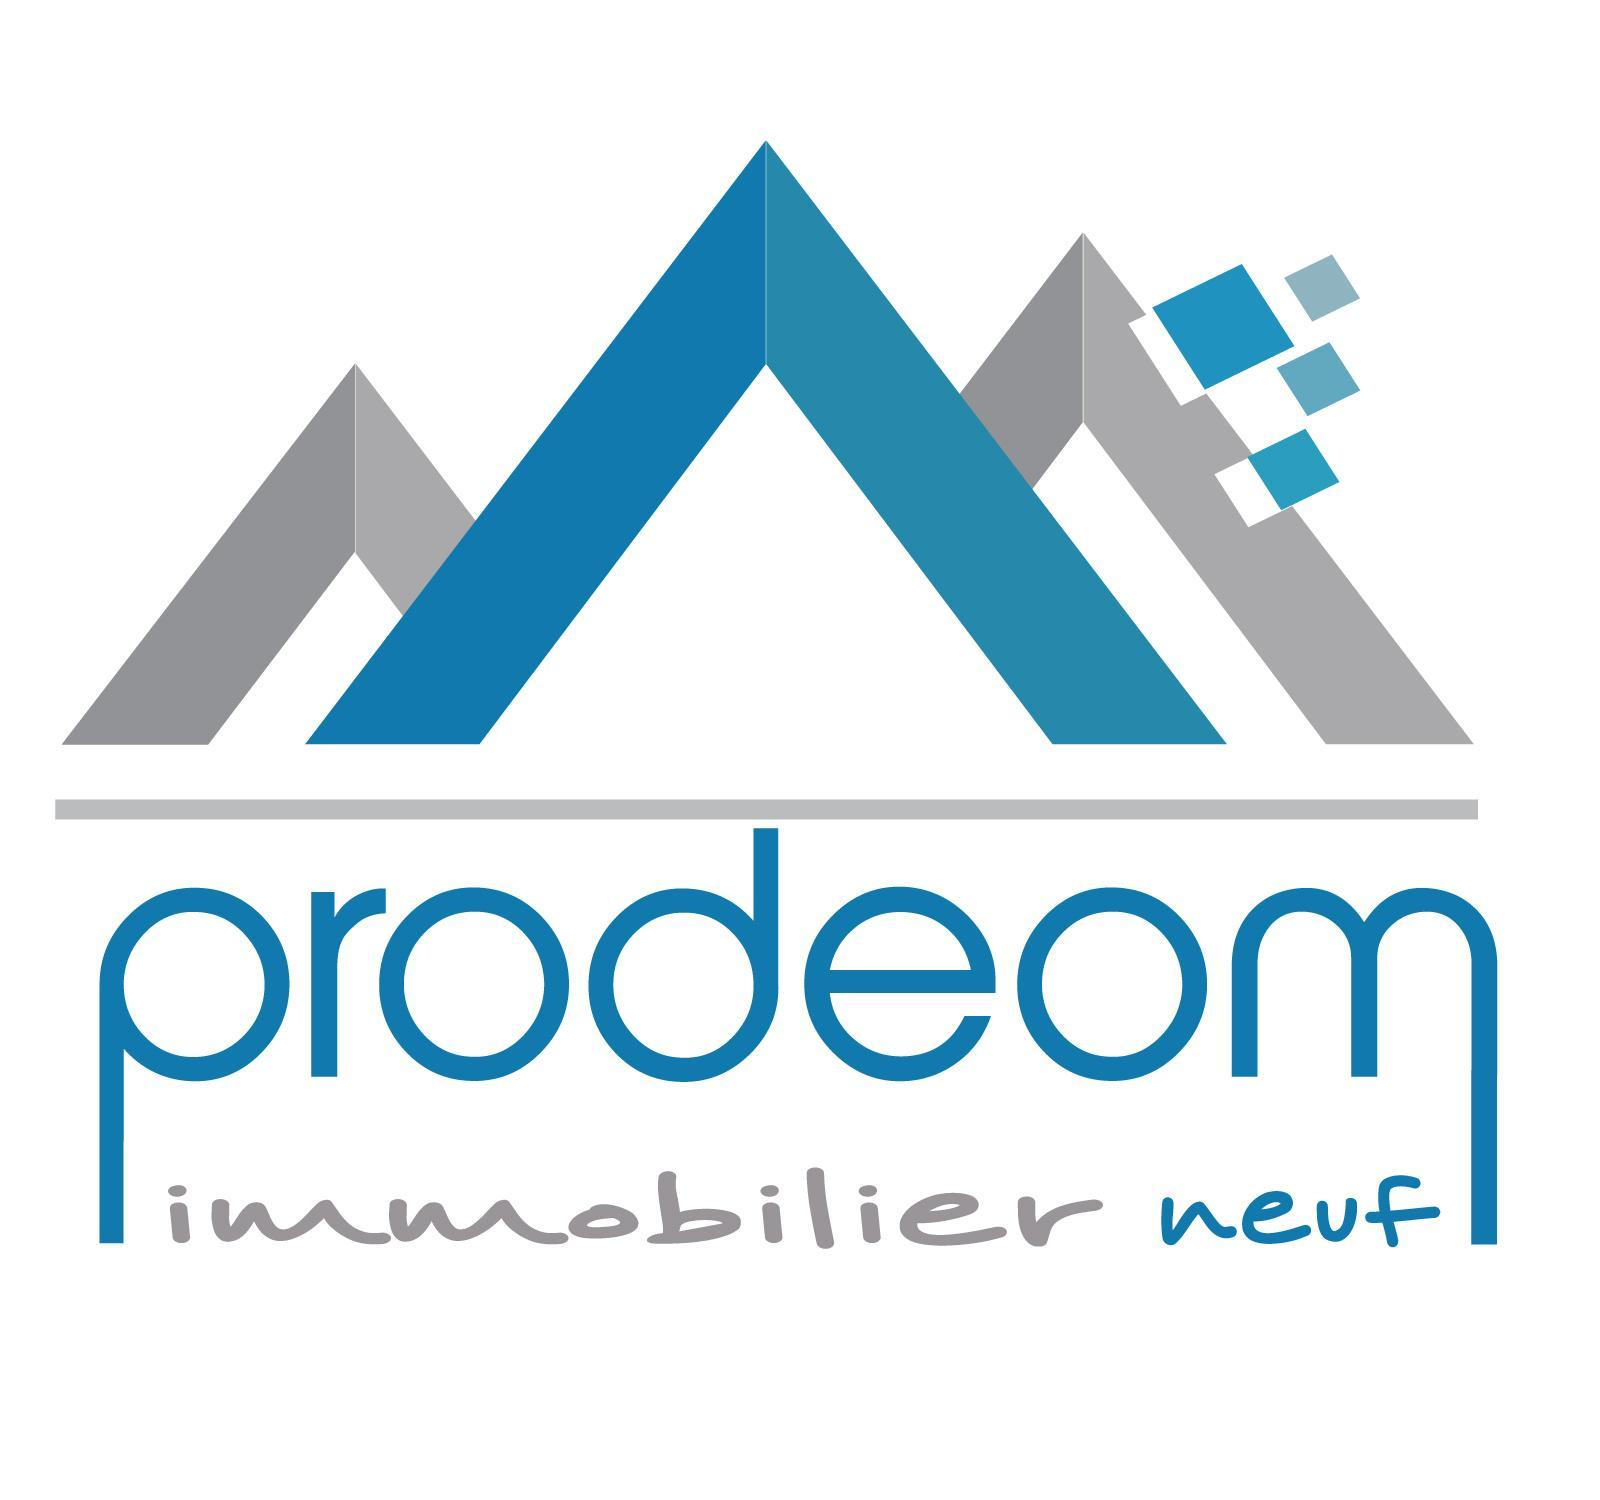 Prodeom immobilier agence immobilière Montpellier (34000)